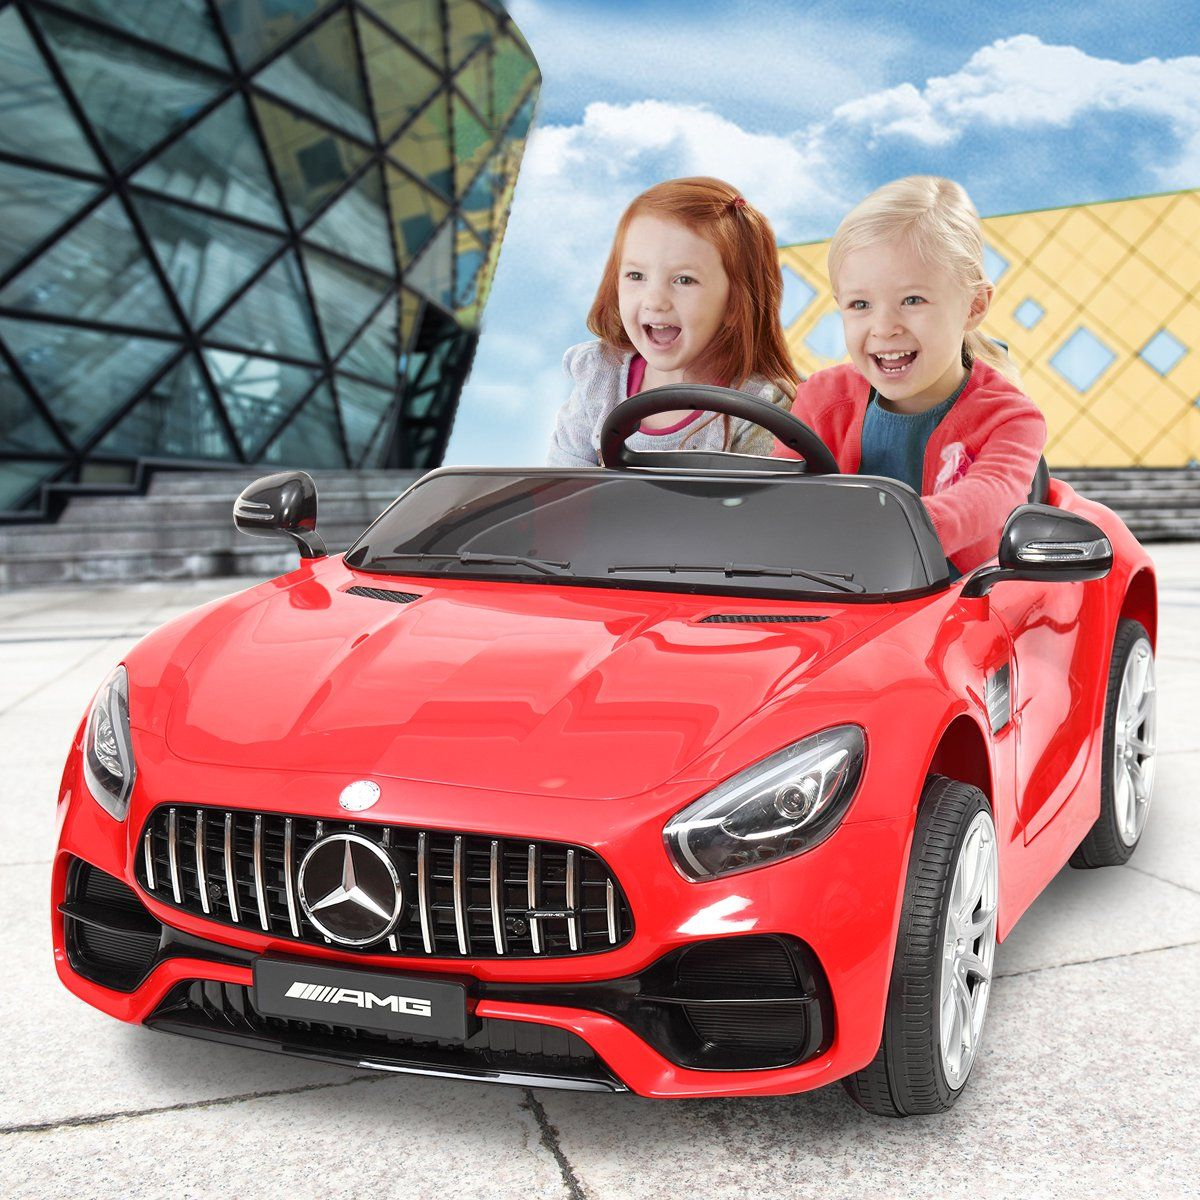 Tobbi Mercedes Benz Licensed 12V Electric Kids Ride On Car with Remote Control 3 Speeds MP3 Lights Red - Walmart.com in 2020 | Kids ride on, Kids ride on toys, Ride on toys